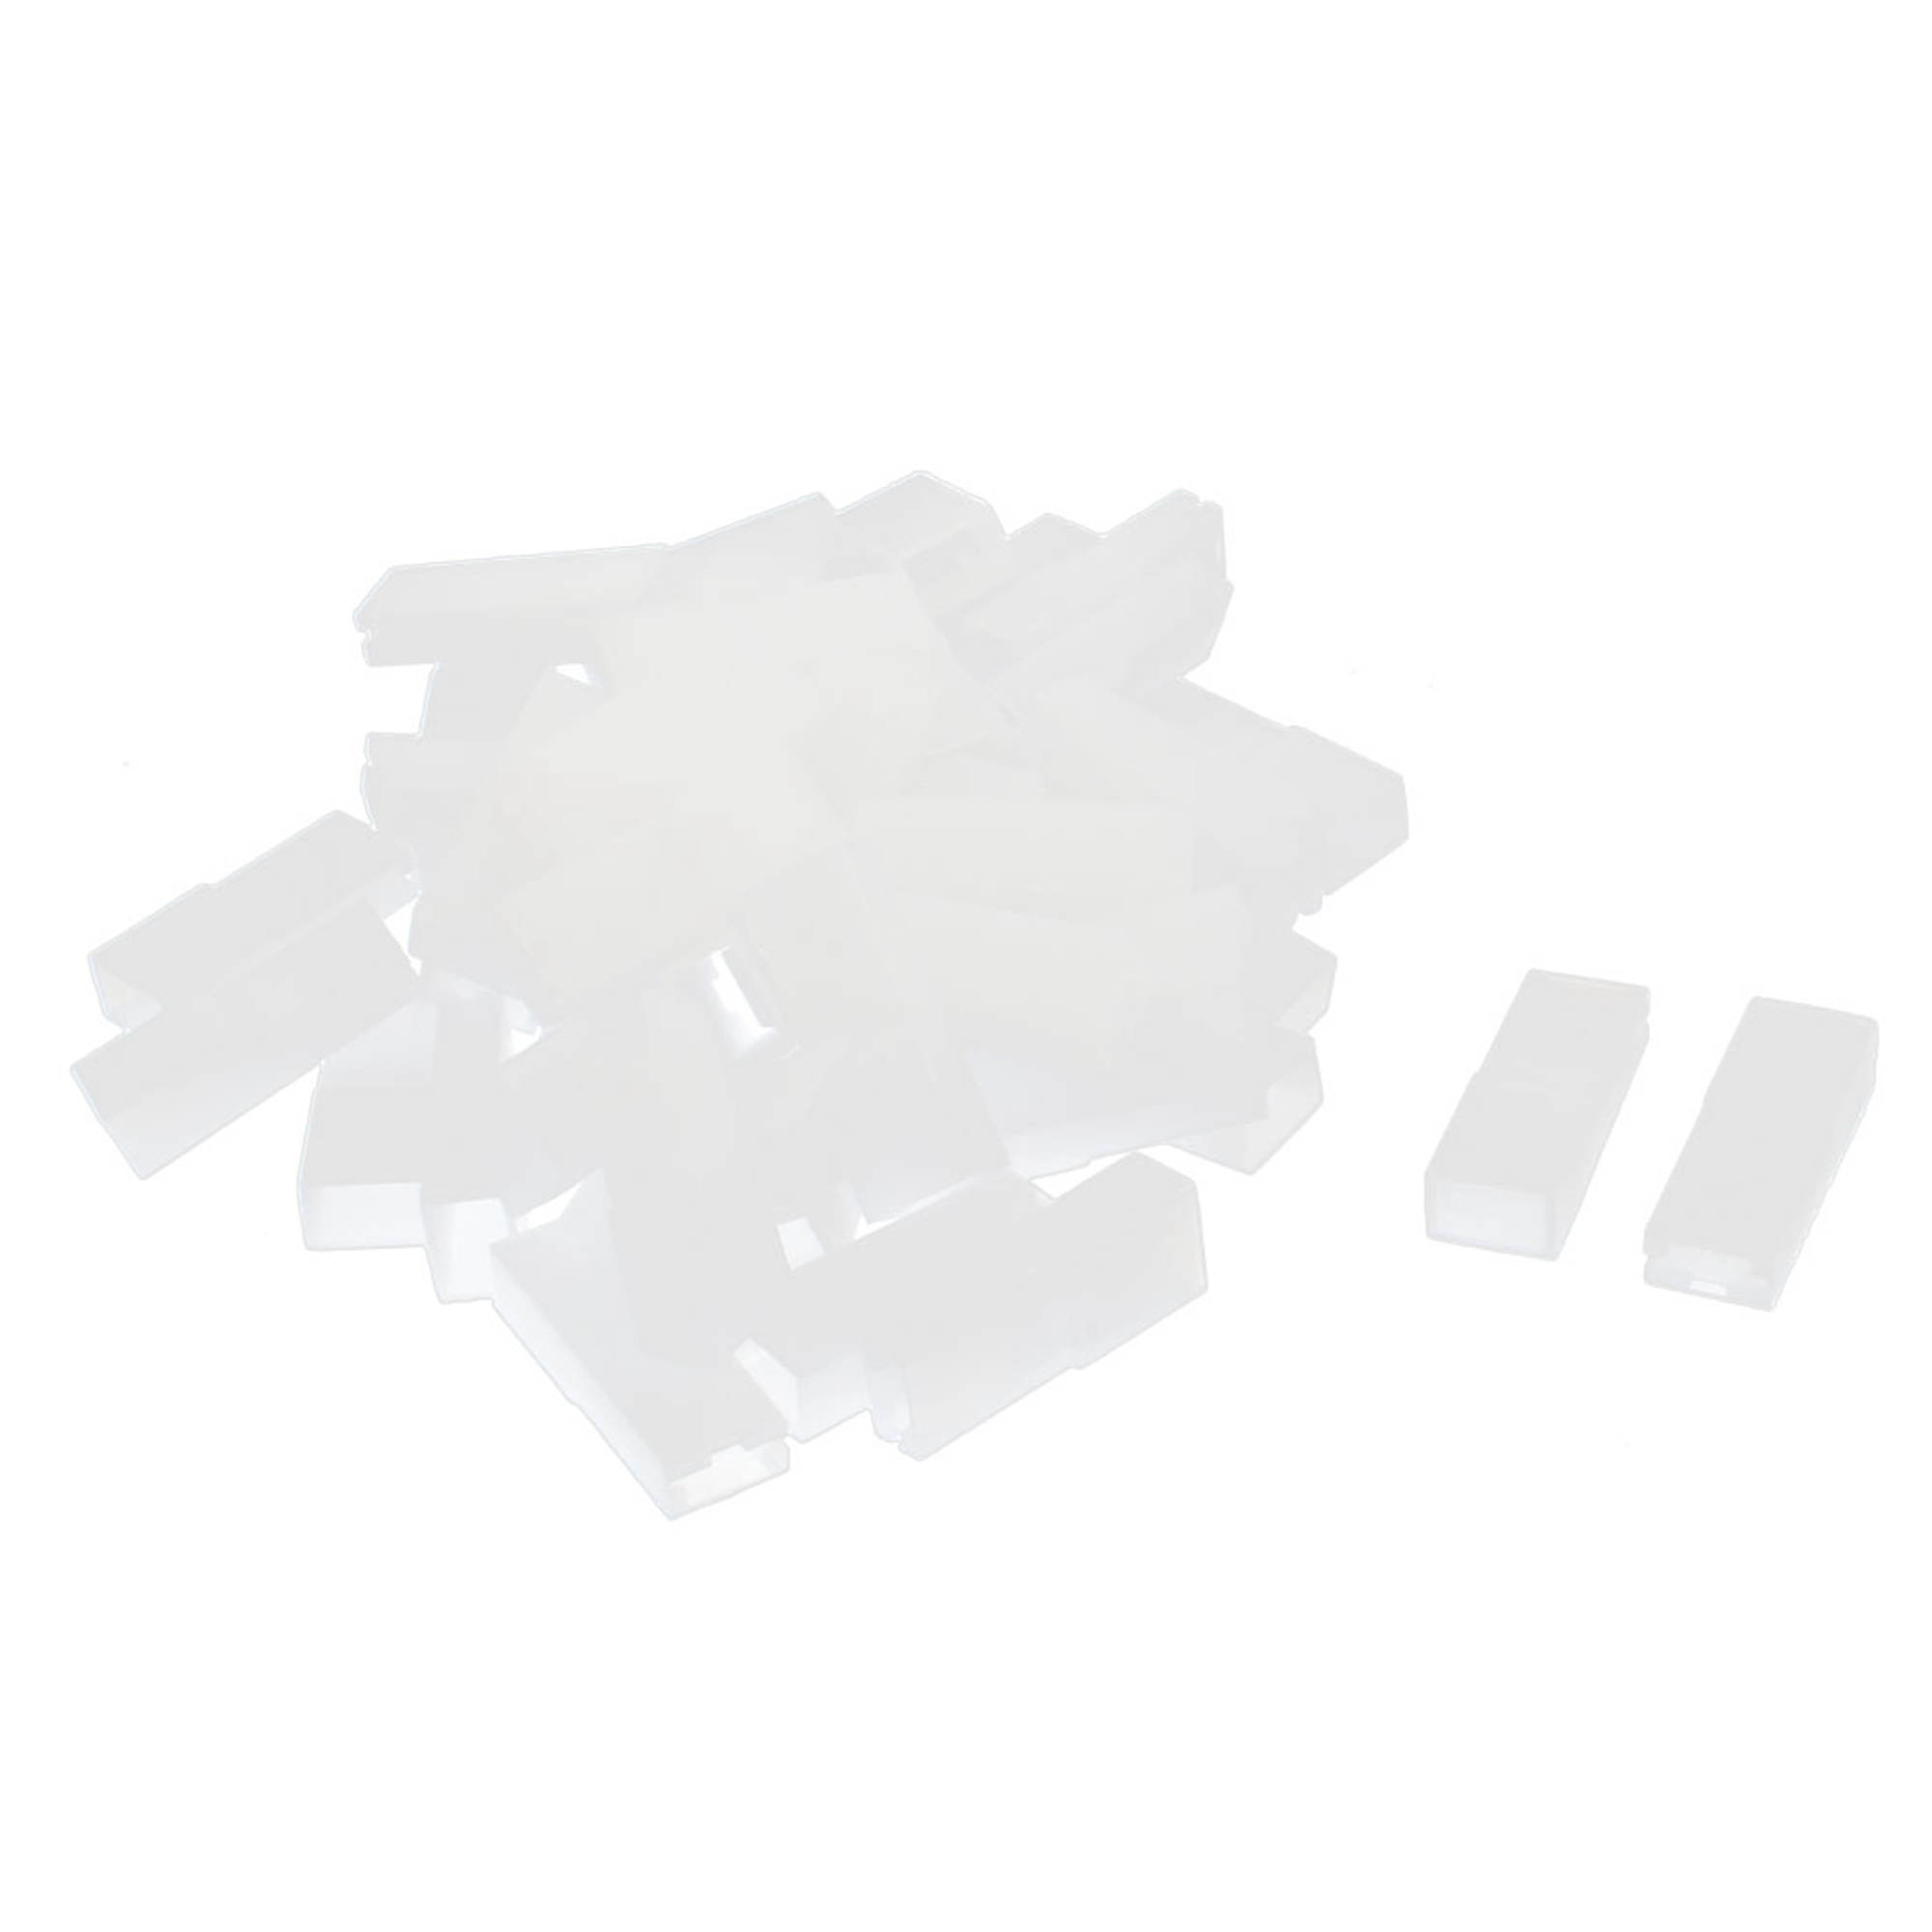 6.3mm Plastic Insulation Car/RC/RV/Boat/Scooter Female Spade Terminal Terminal Connector 50 Pcs